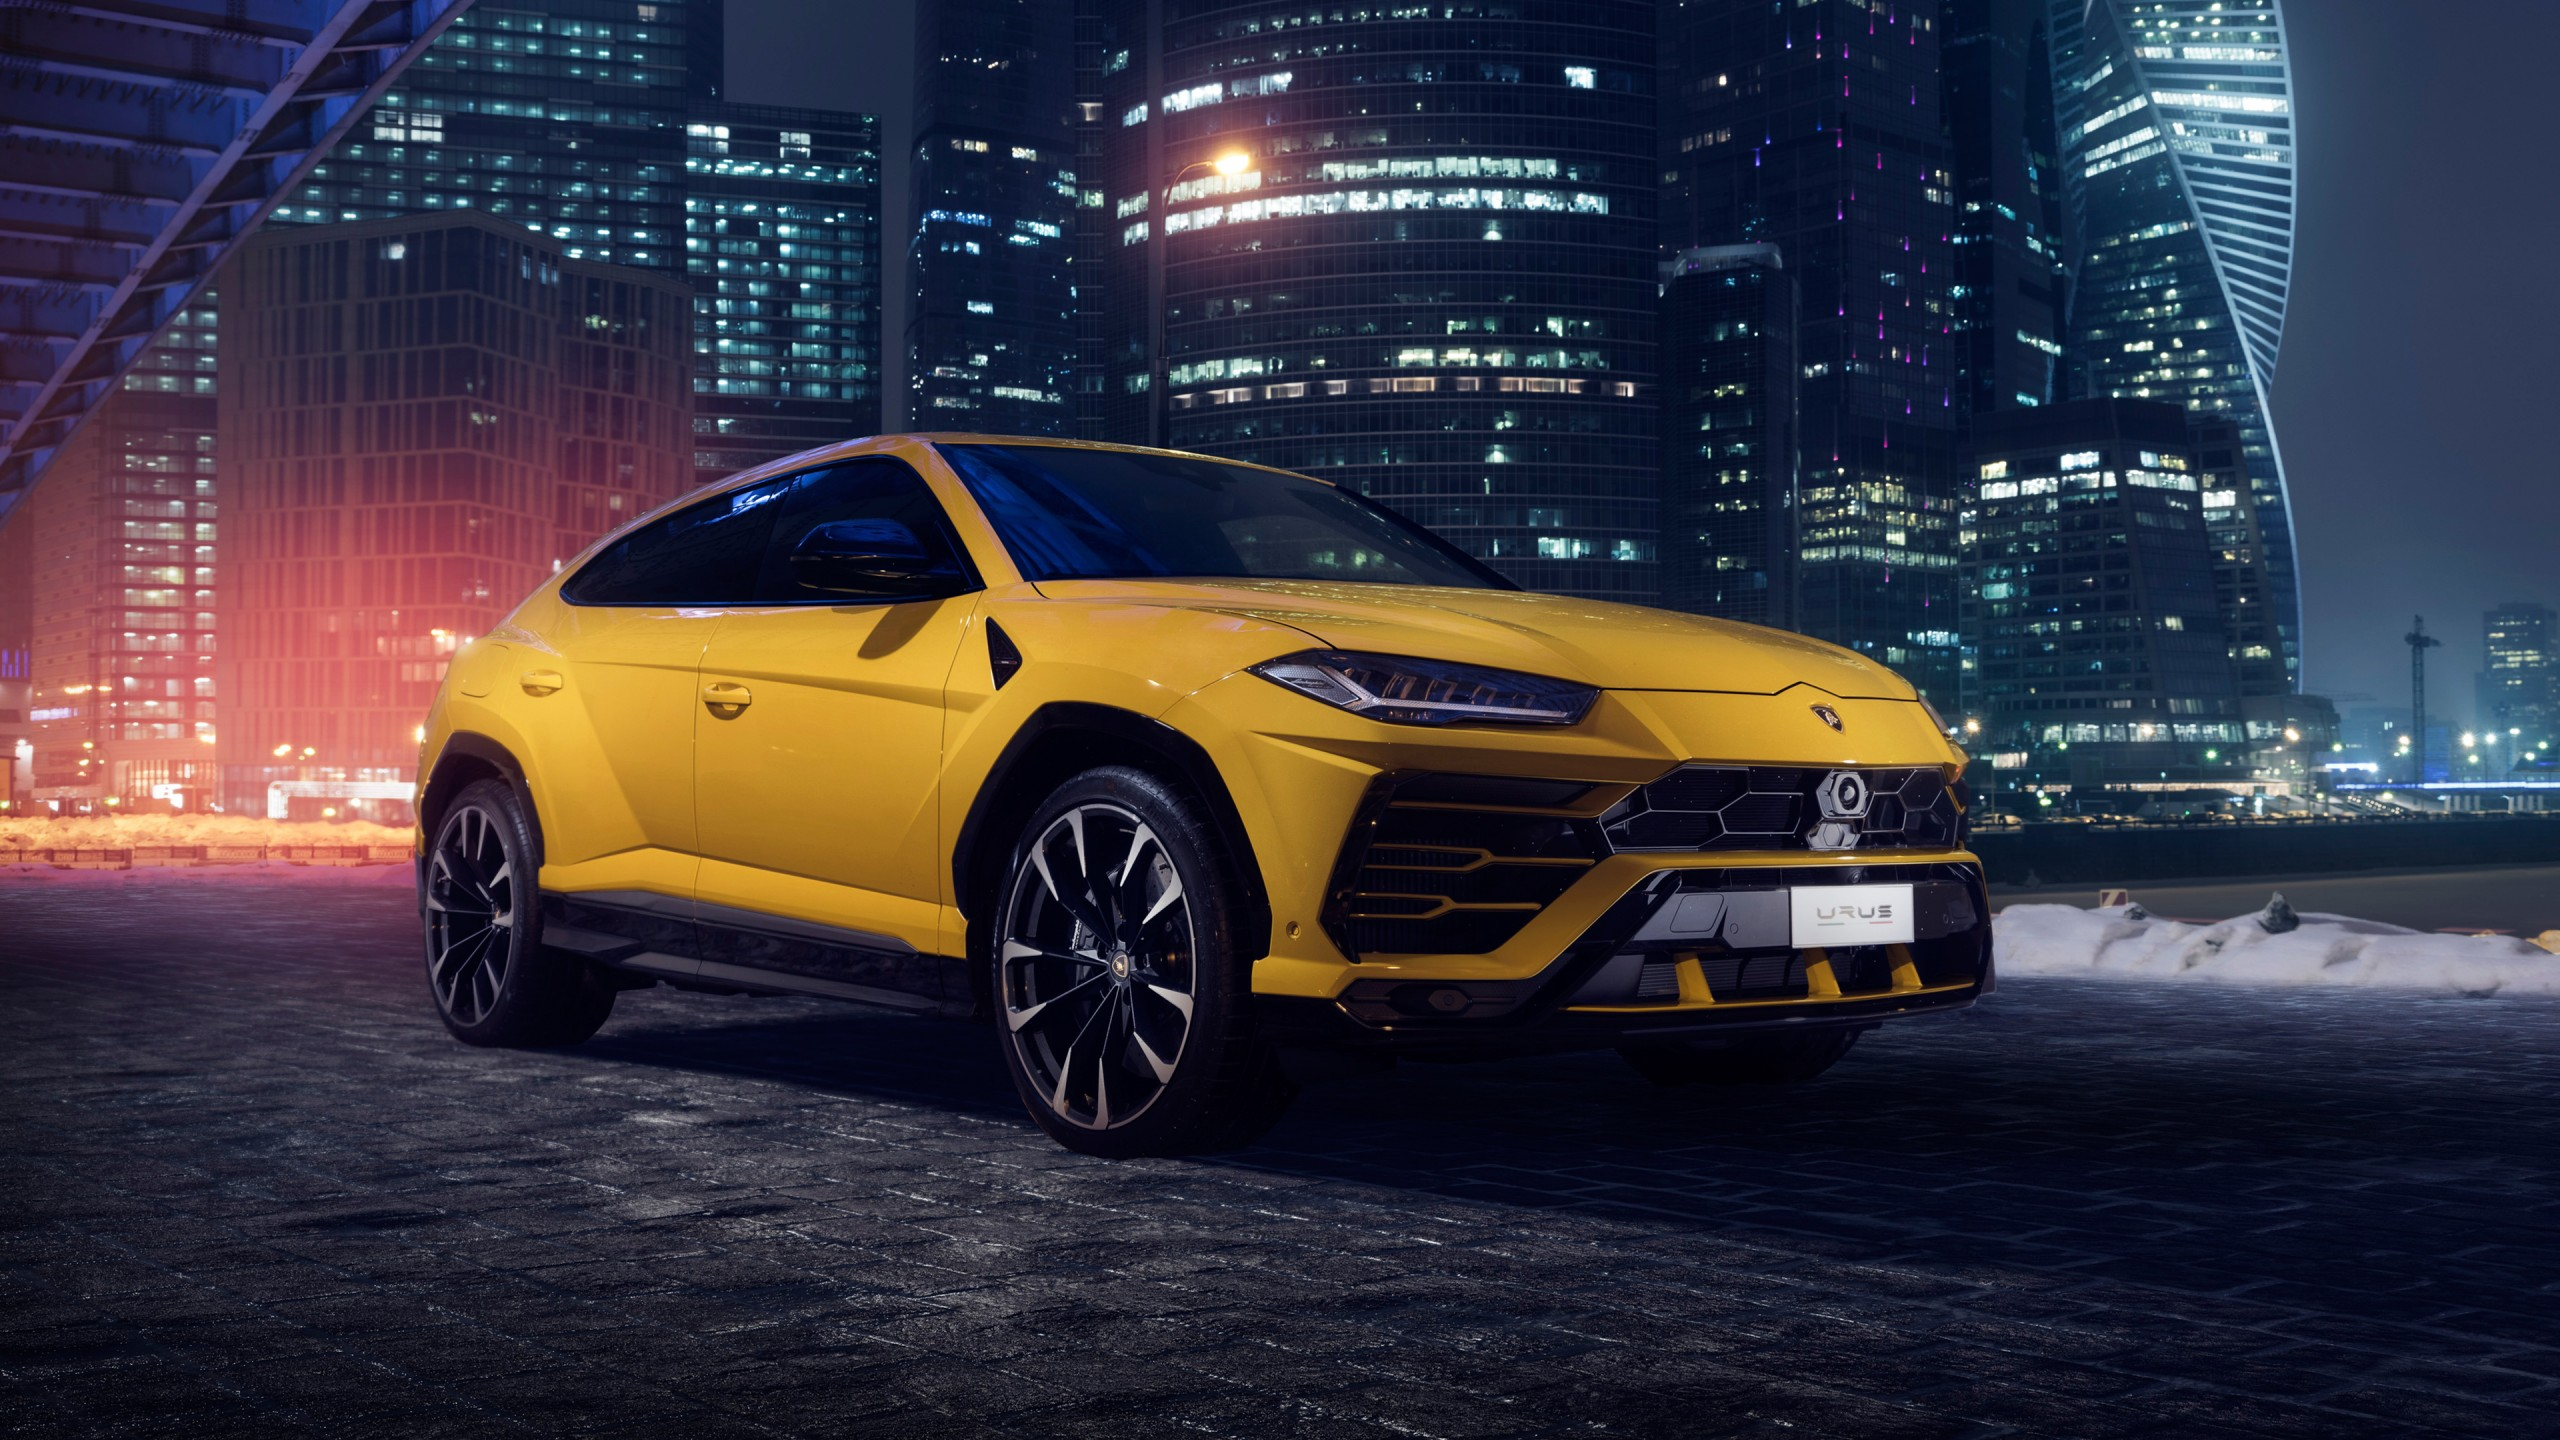 Lamborghini Urus 2018 4k 8 Wallpaper Hd Car Wallpapers